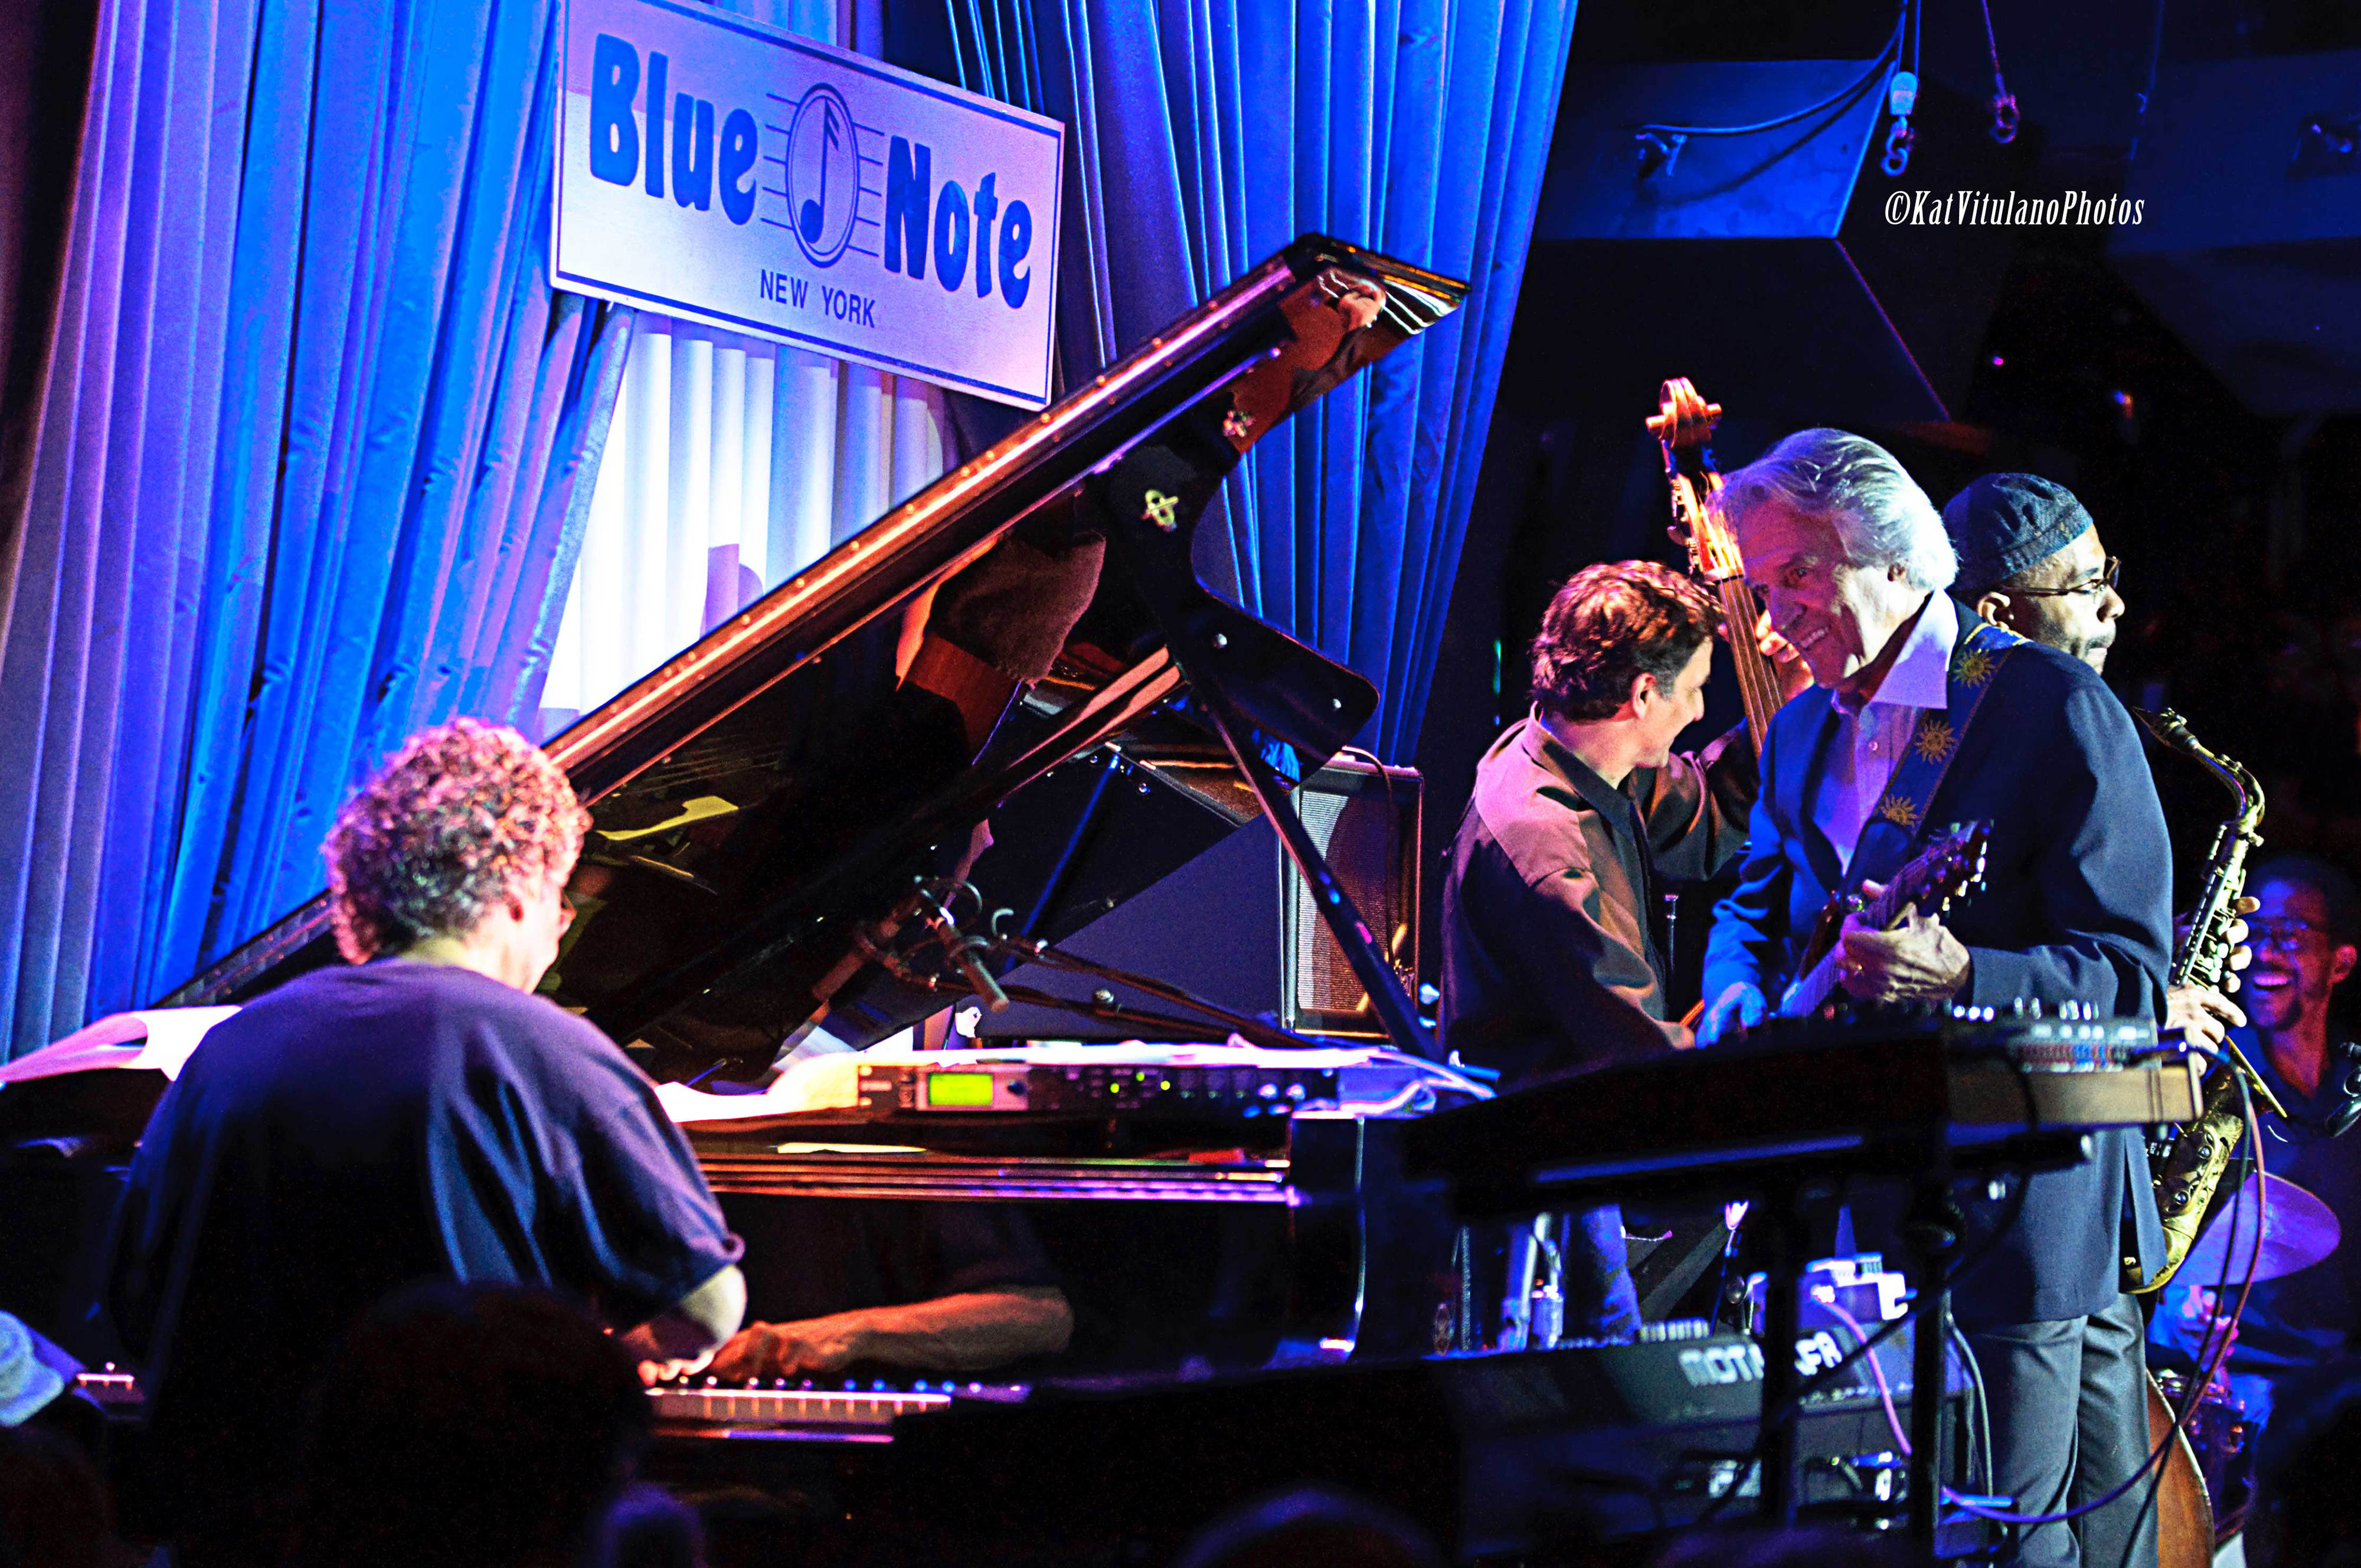 Chick Corea & John McLaughlin @The Blue Note